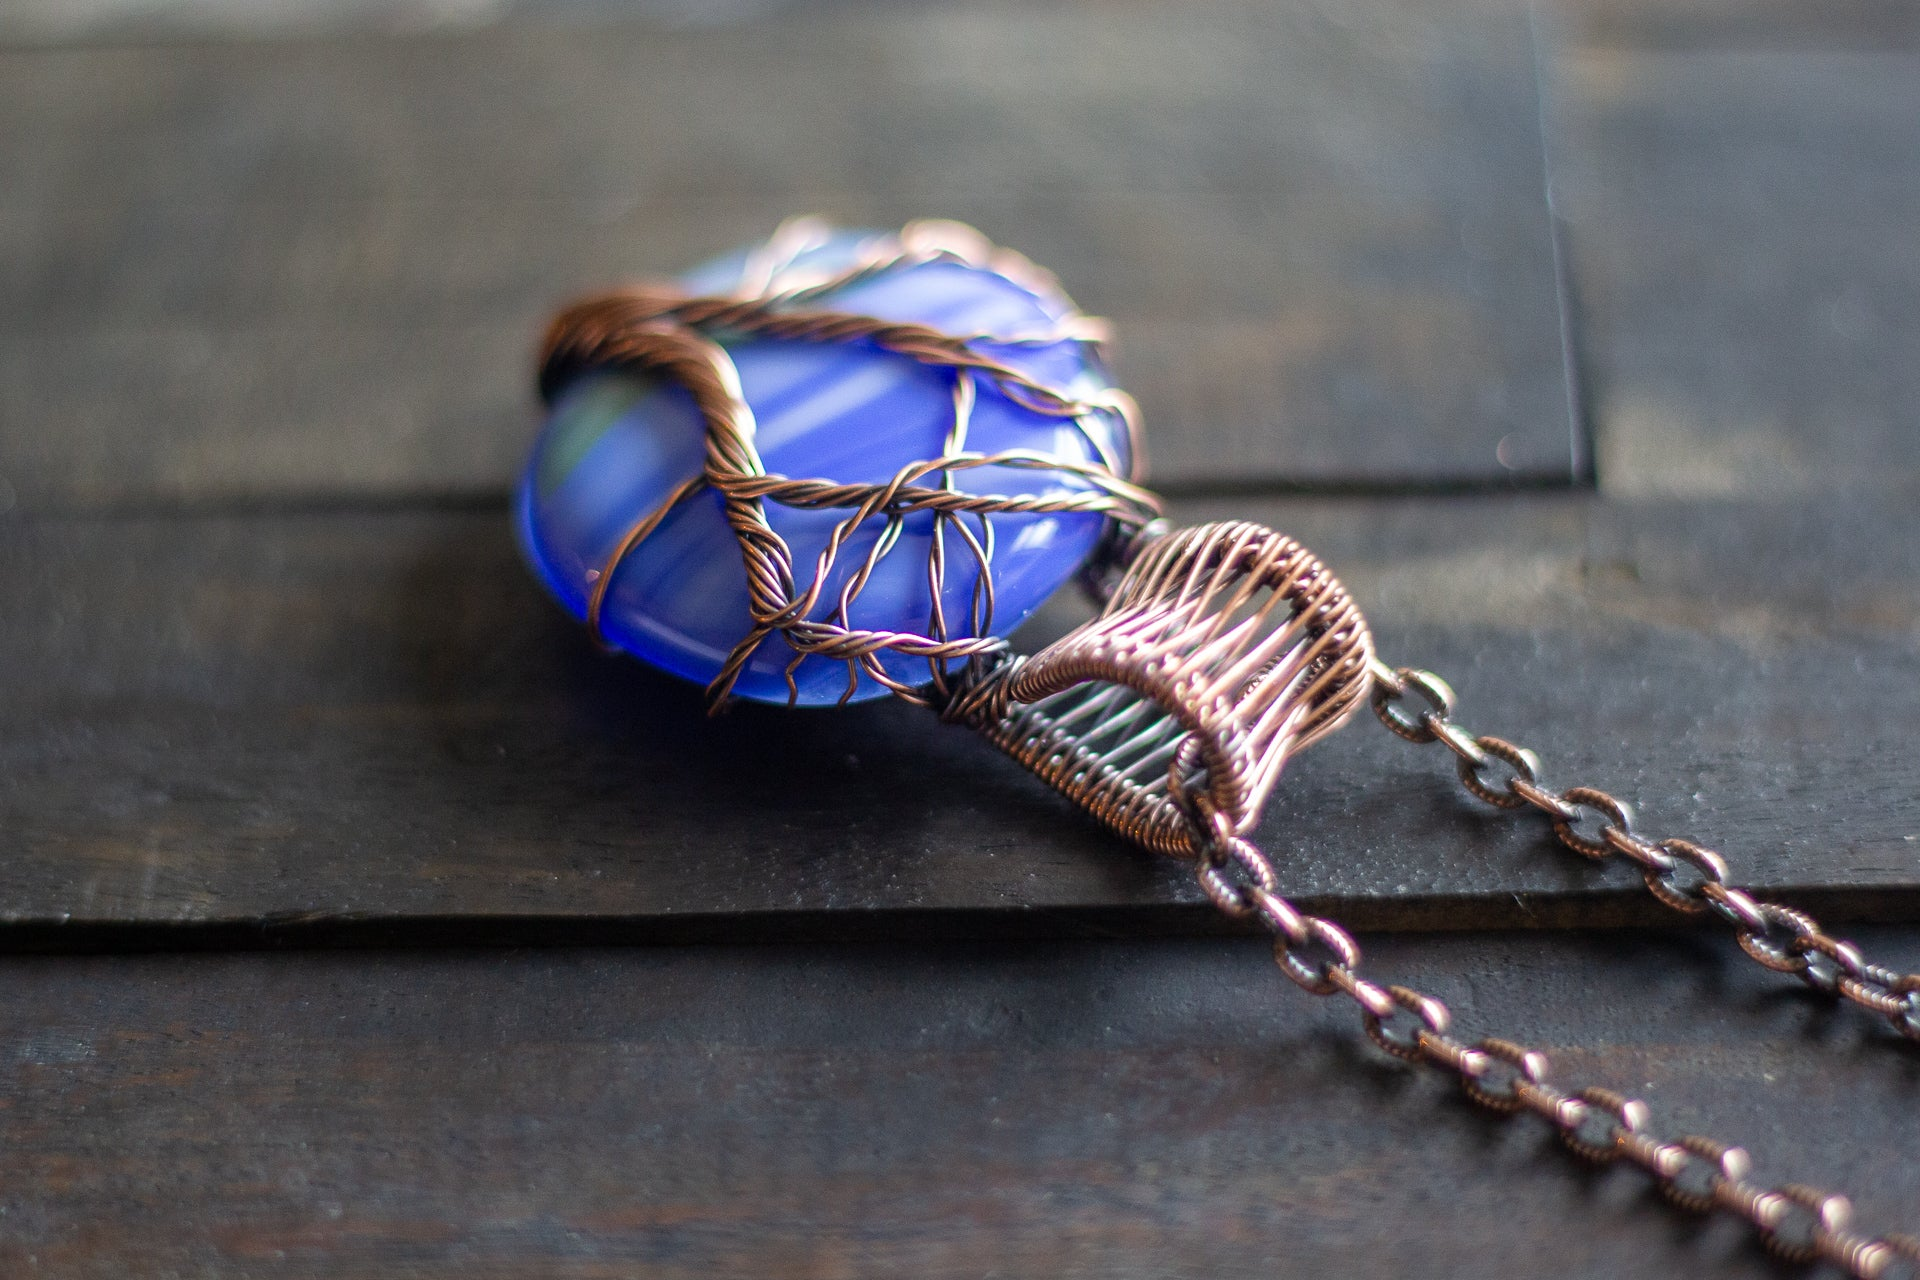 Streaked Blue Fused Glass and Copper Wire Wrapped Tree of Life Pendant